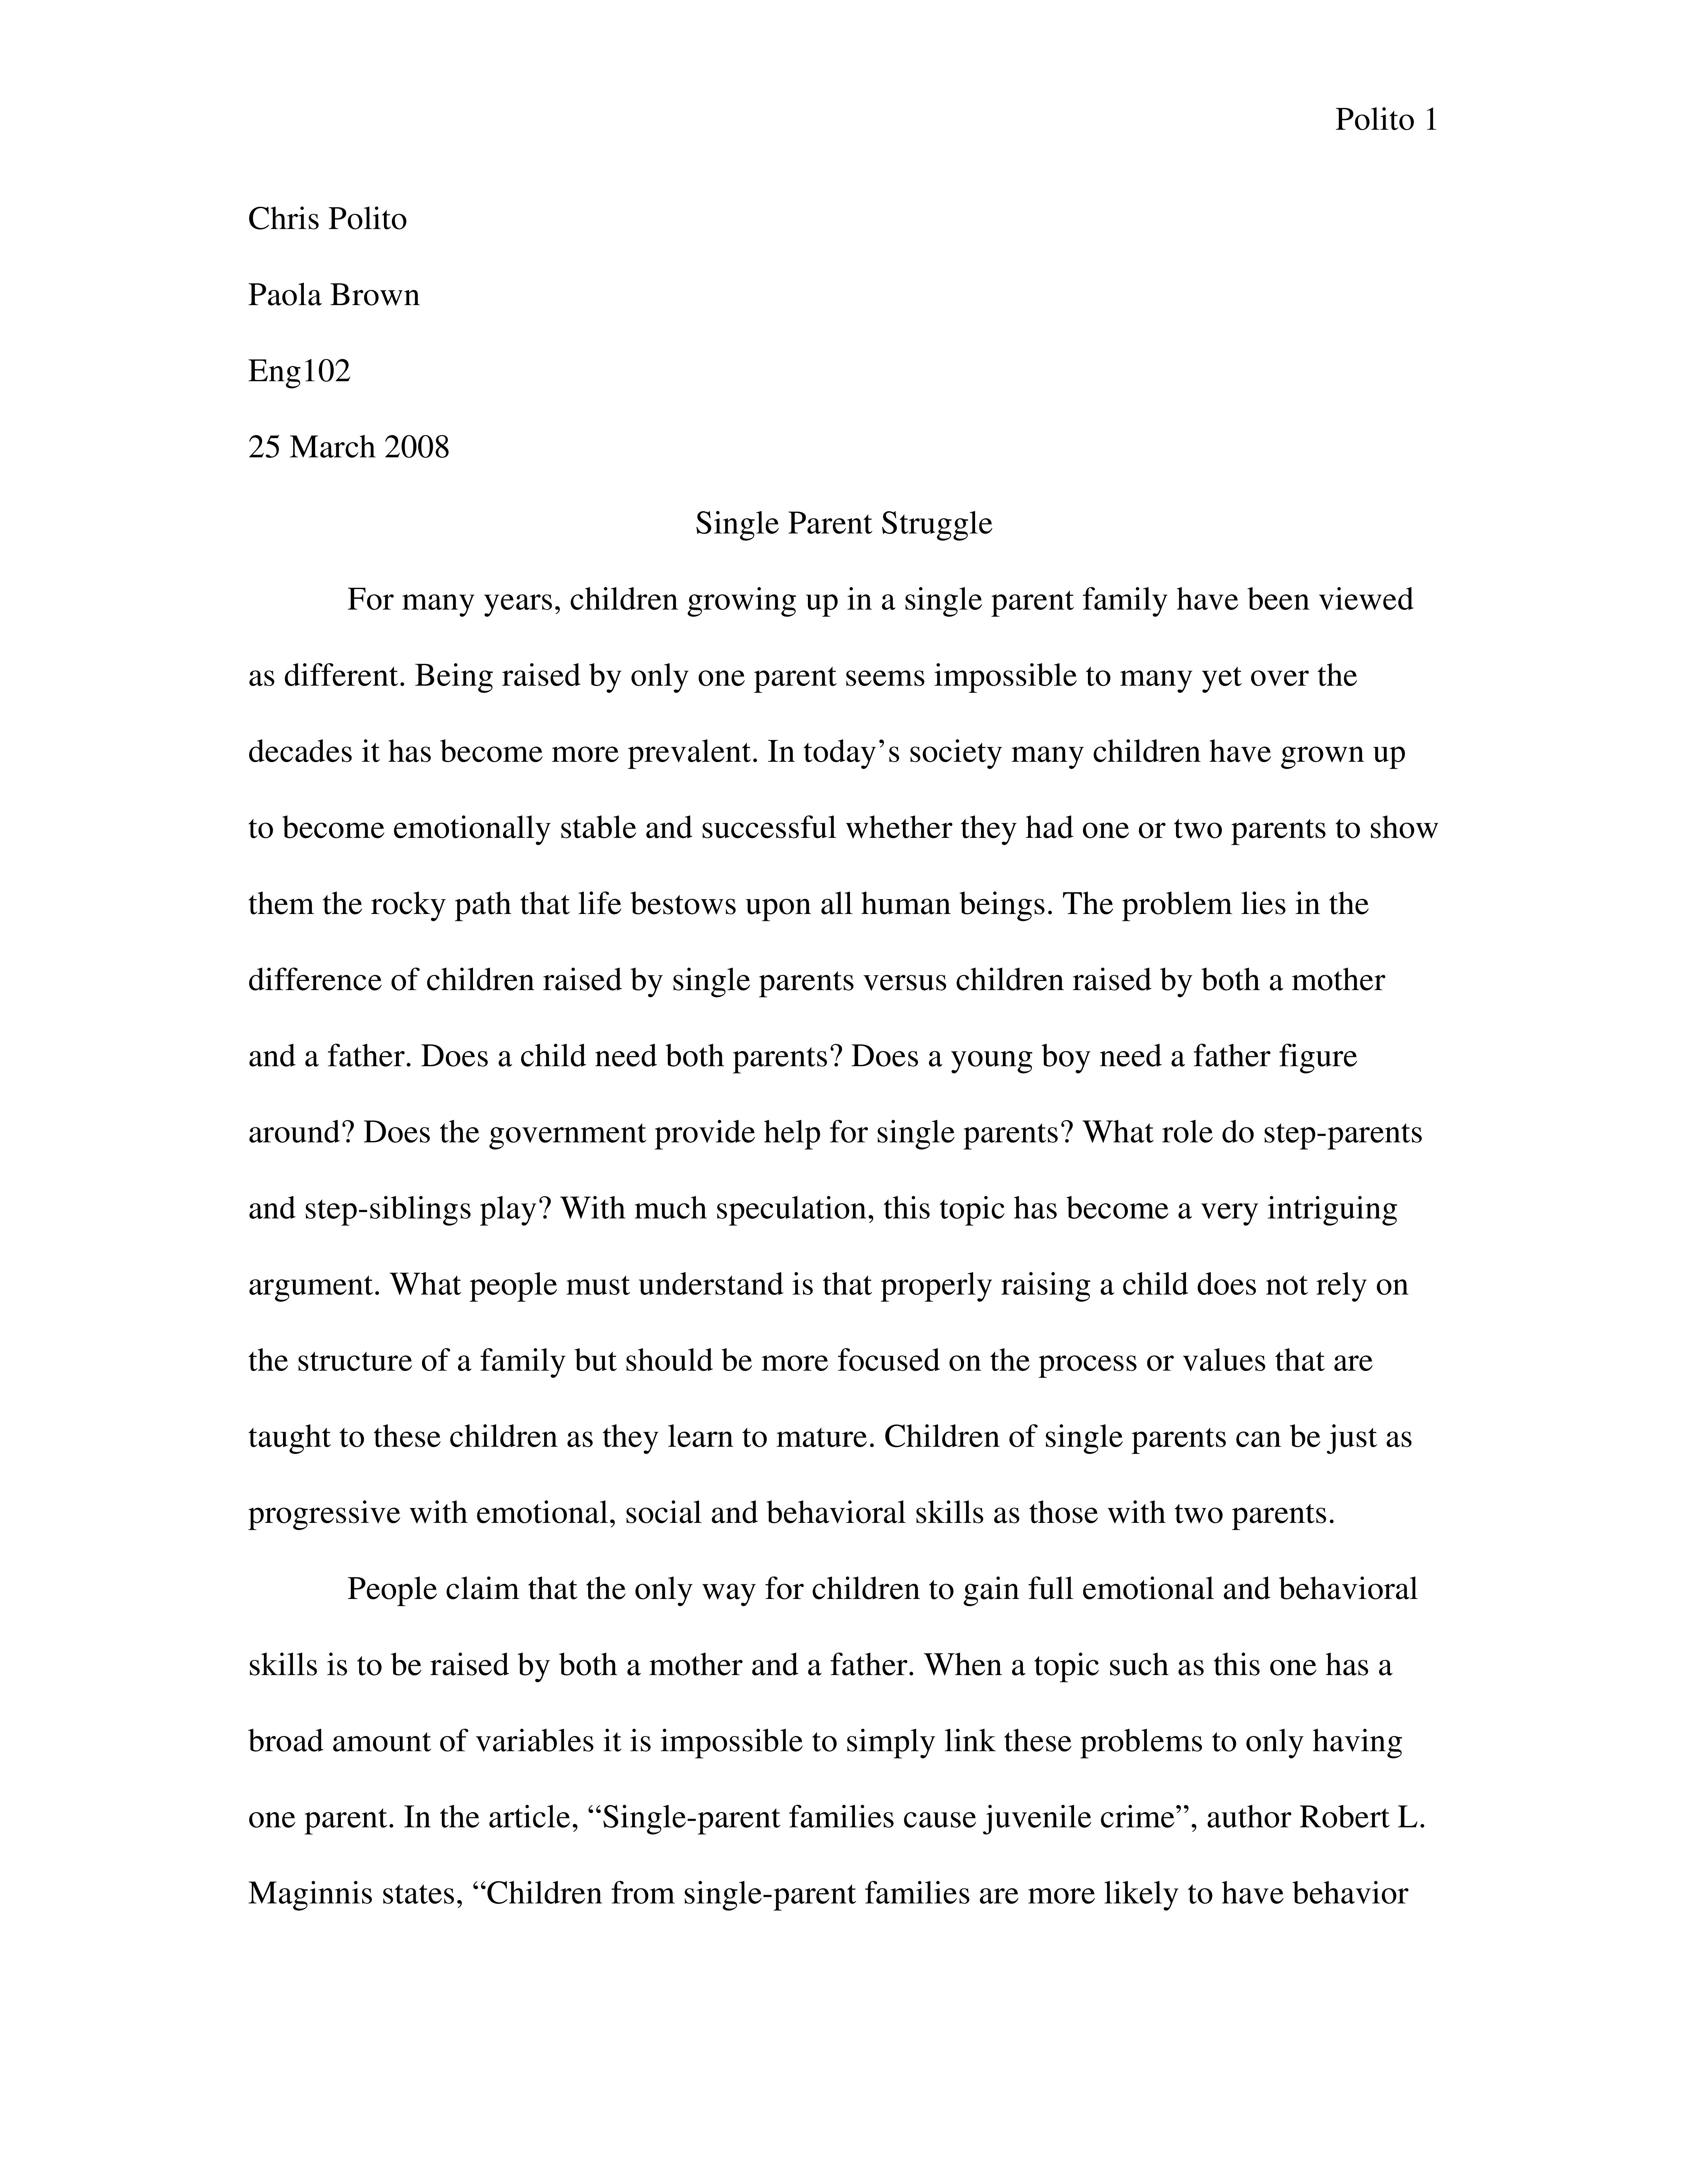 Essay about greek myths